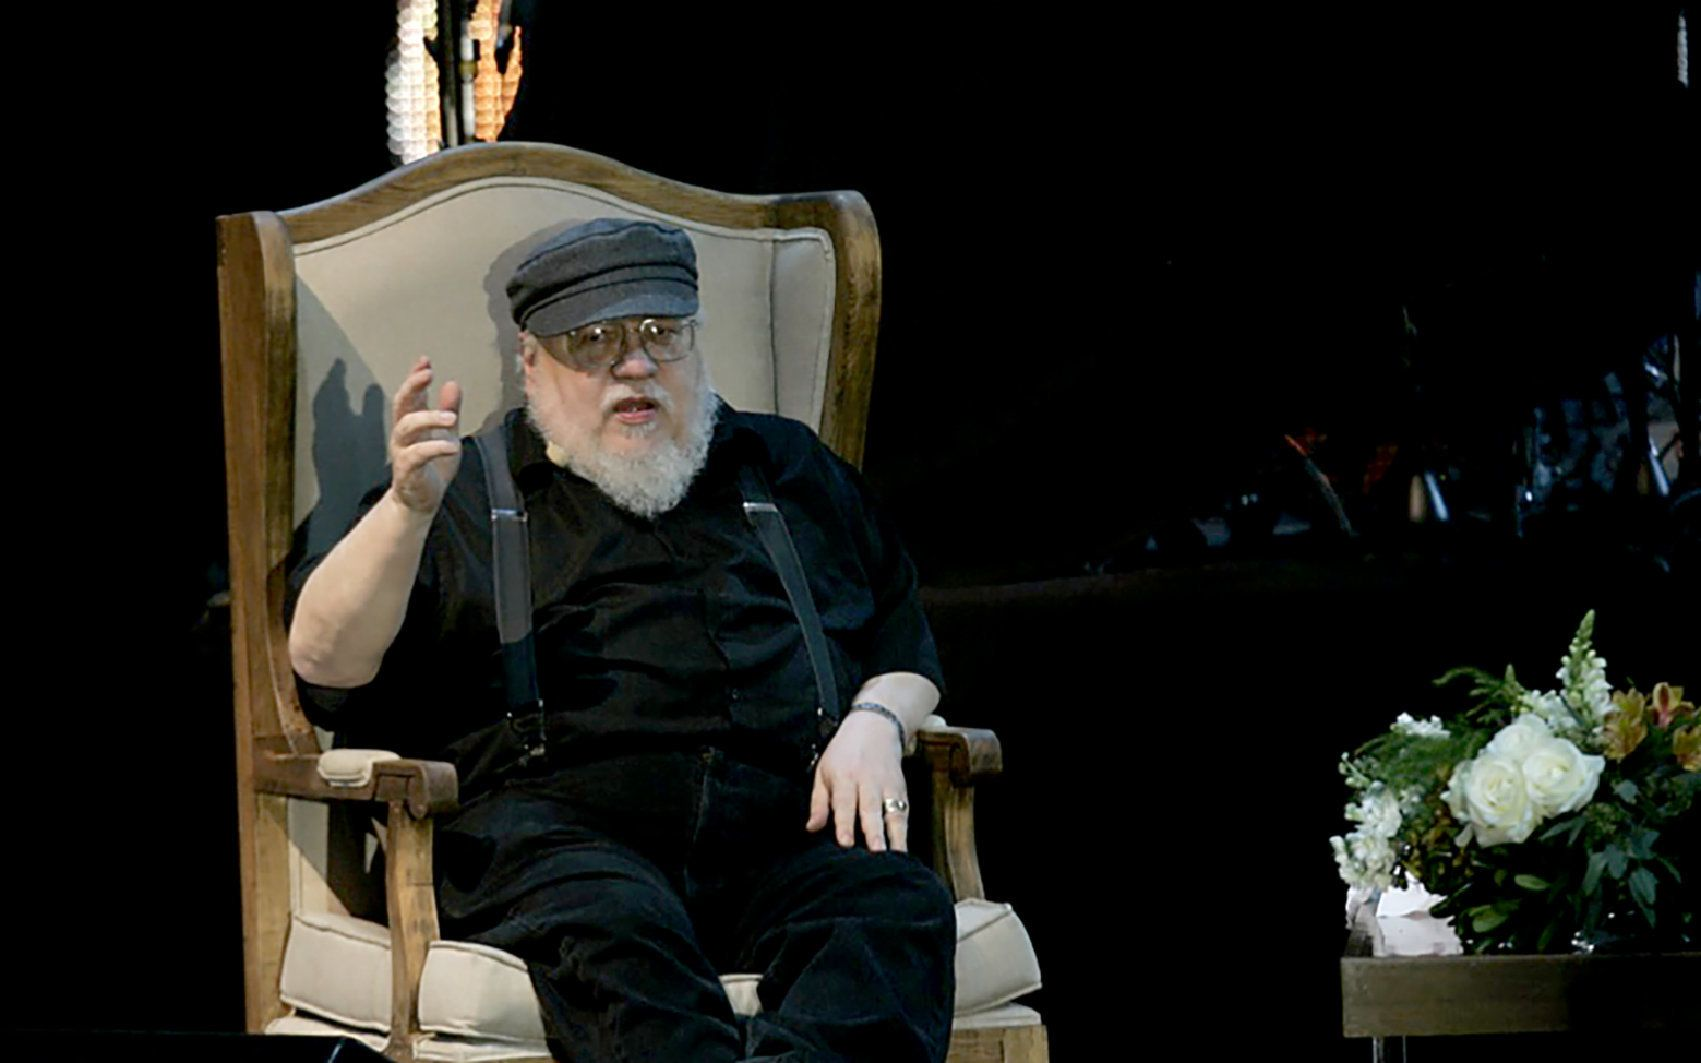 US writer George R.R Martin, author of the book series Game of Thrones, speaks during a conference at the Guadalajara International Book Fair in Guadalajara, Mexico on December 2, 2016. / AFP / STR        (Photo credit should read STR/AFP/Getty Images)